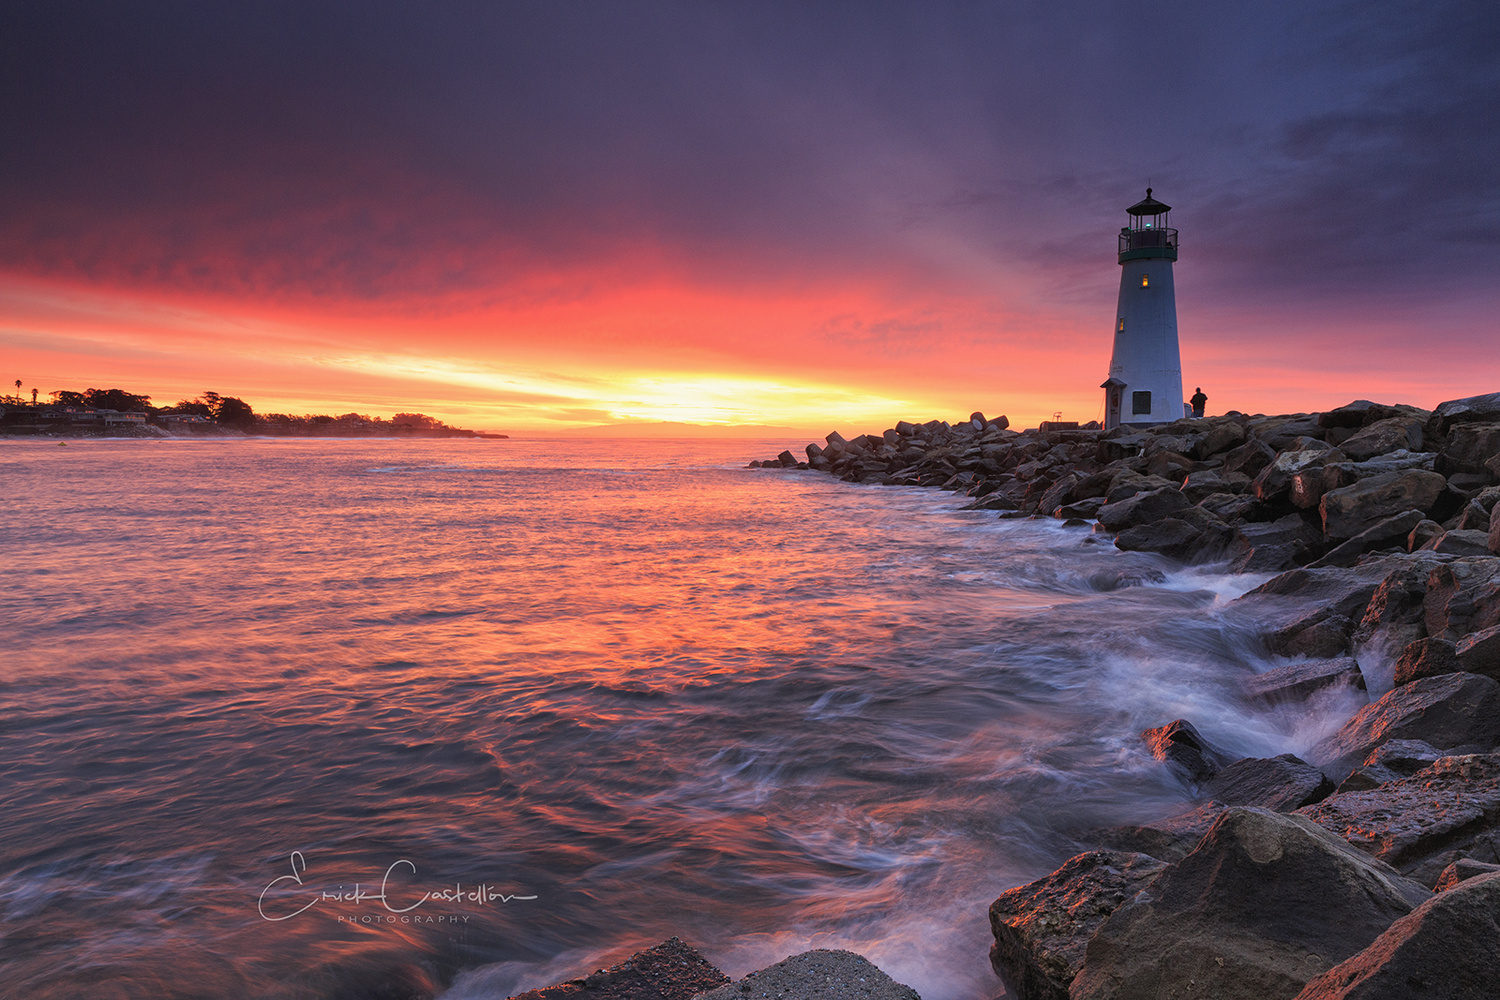 Walton Light House by Erick Castellon